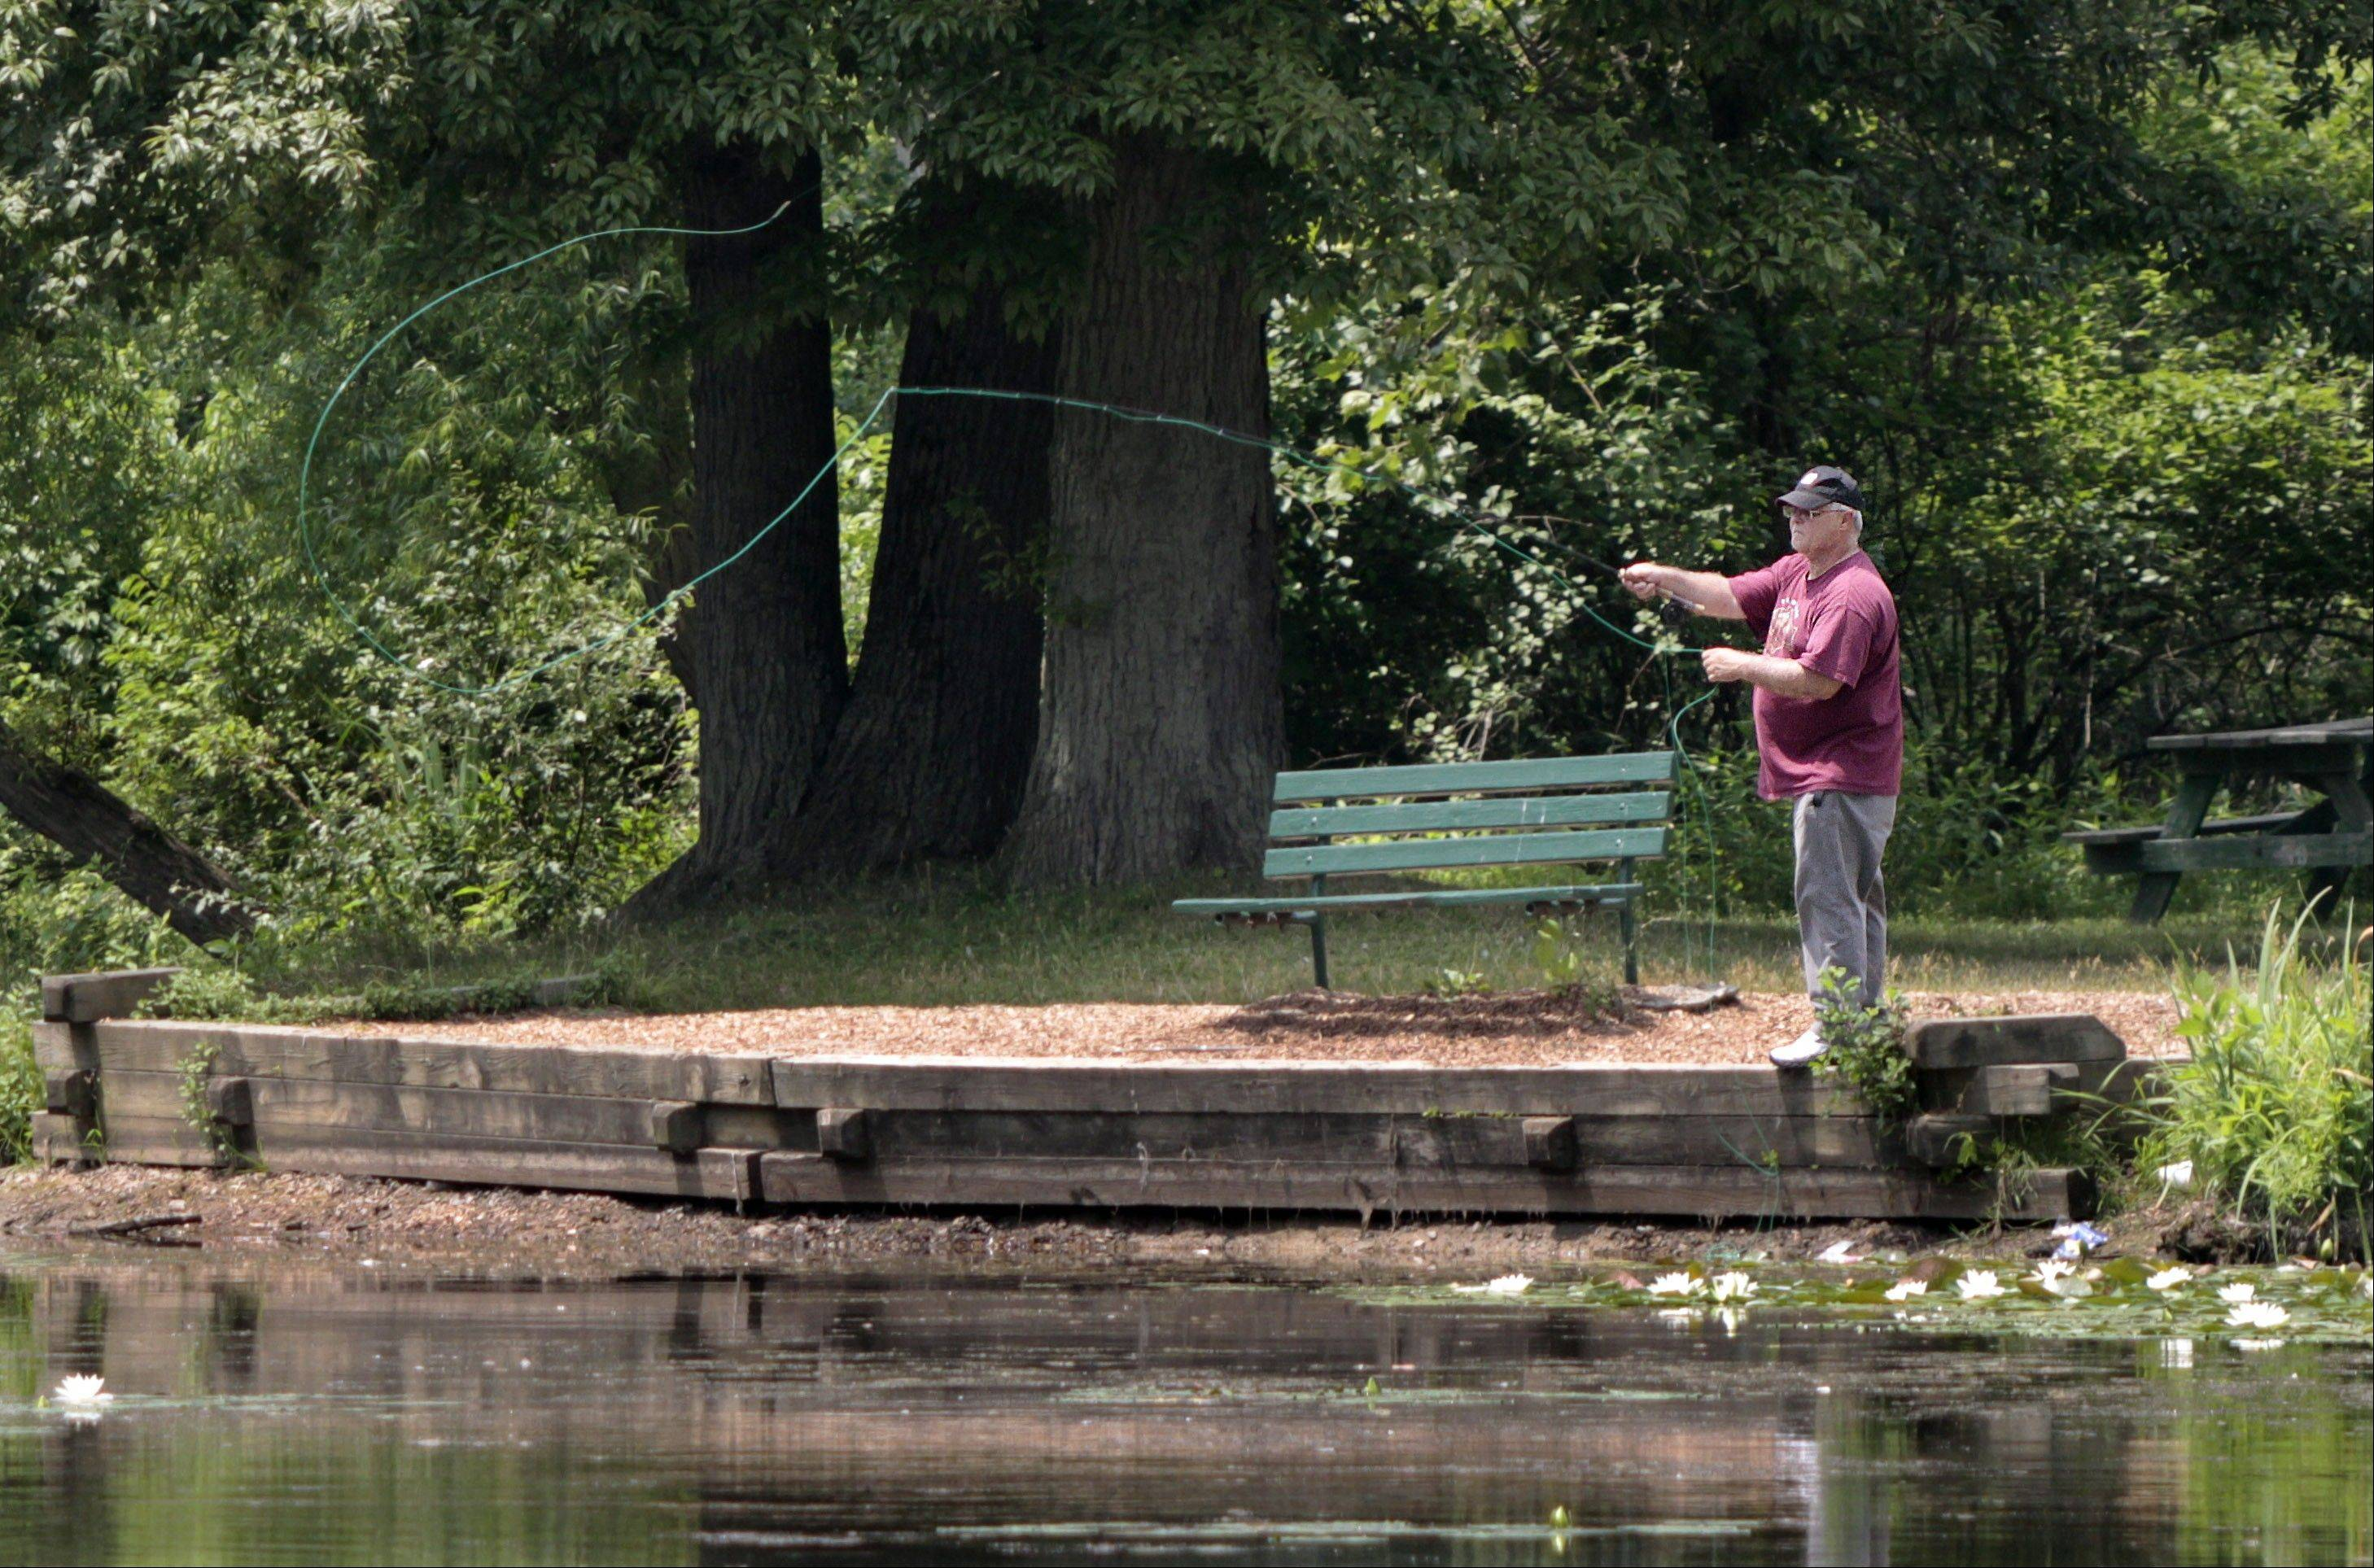 This angler spent an afternoon fly fishing for bluegills and bass at Allegheny County's North Park in Allison Park, Pa. Mike Jackson says it's not as difficult as you might think.